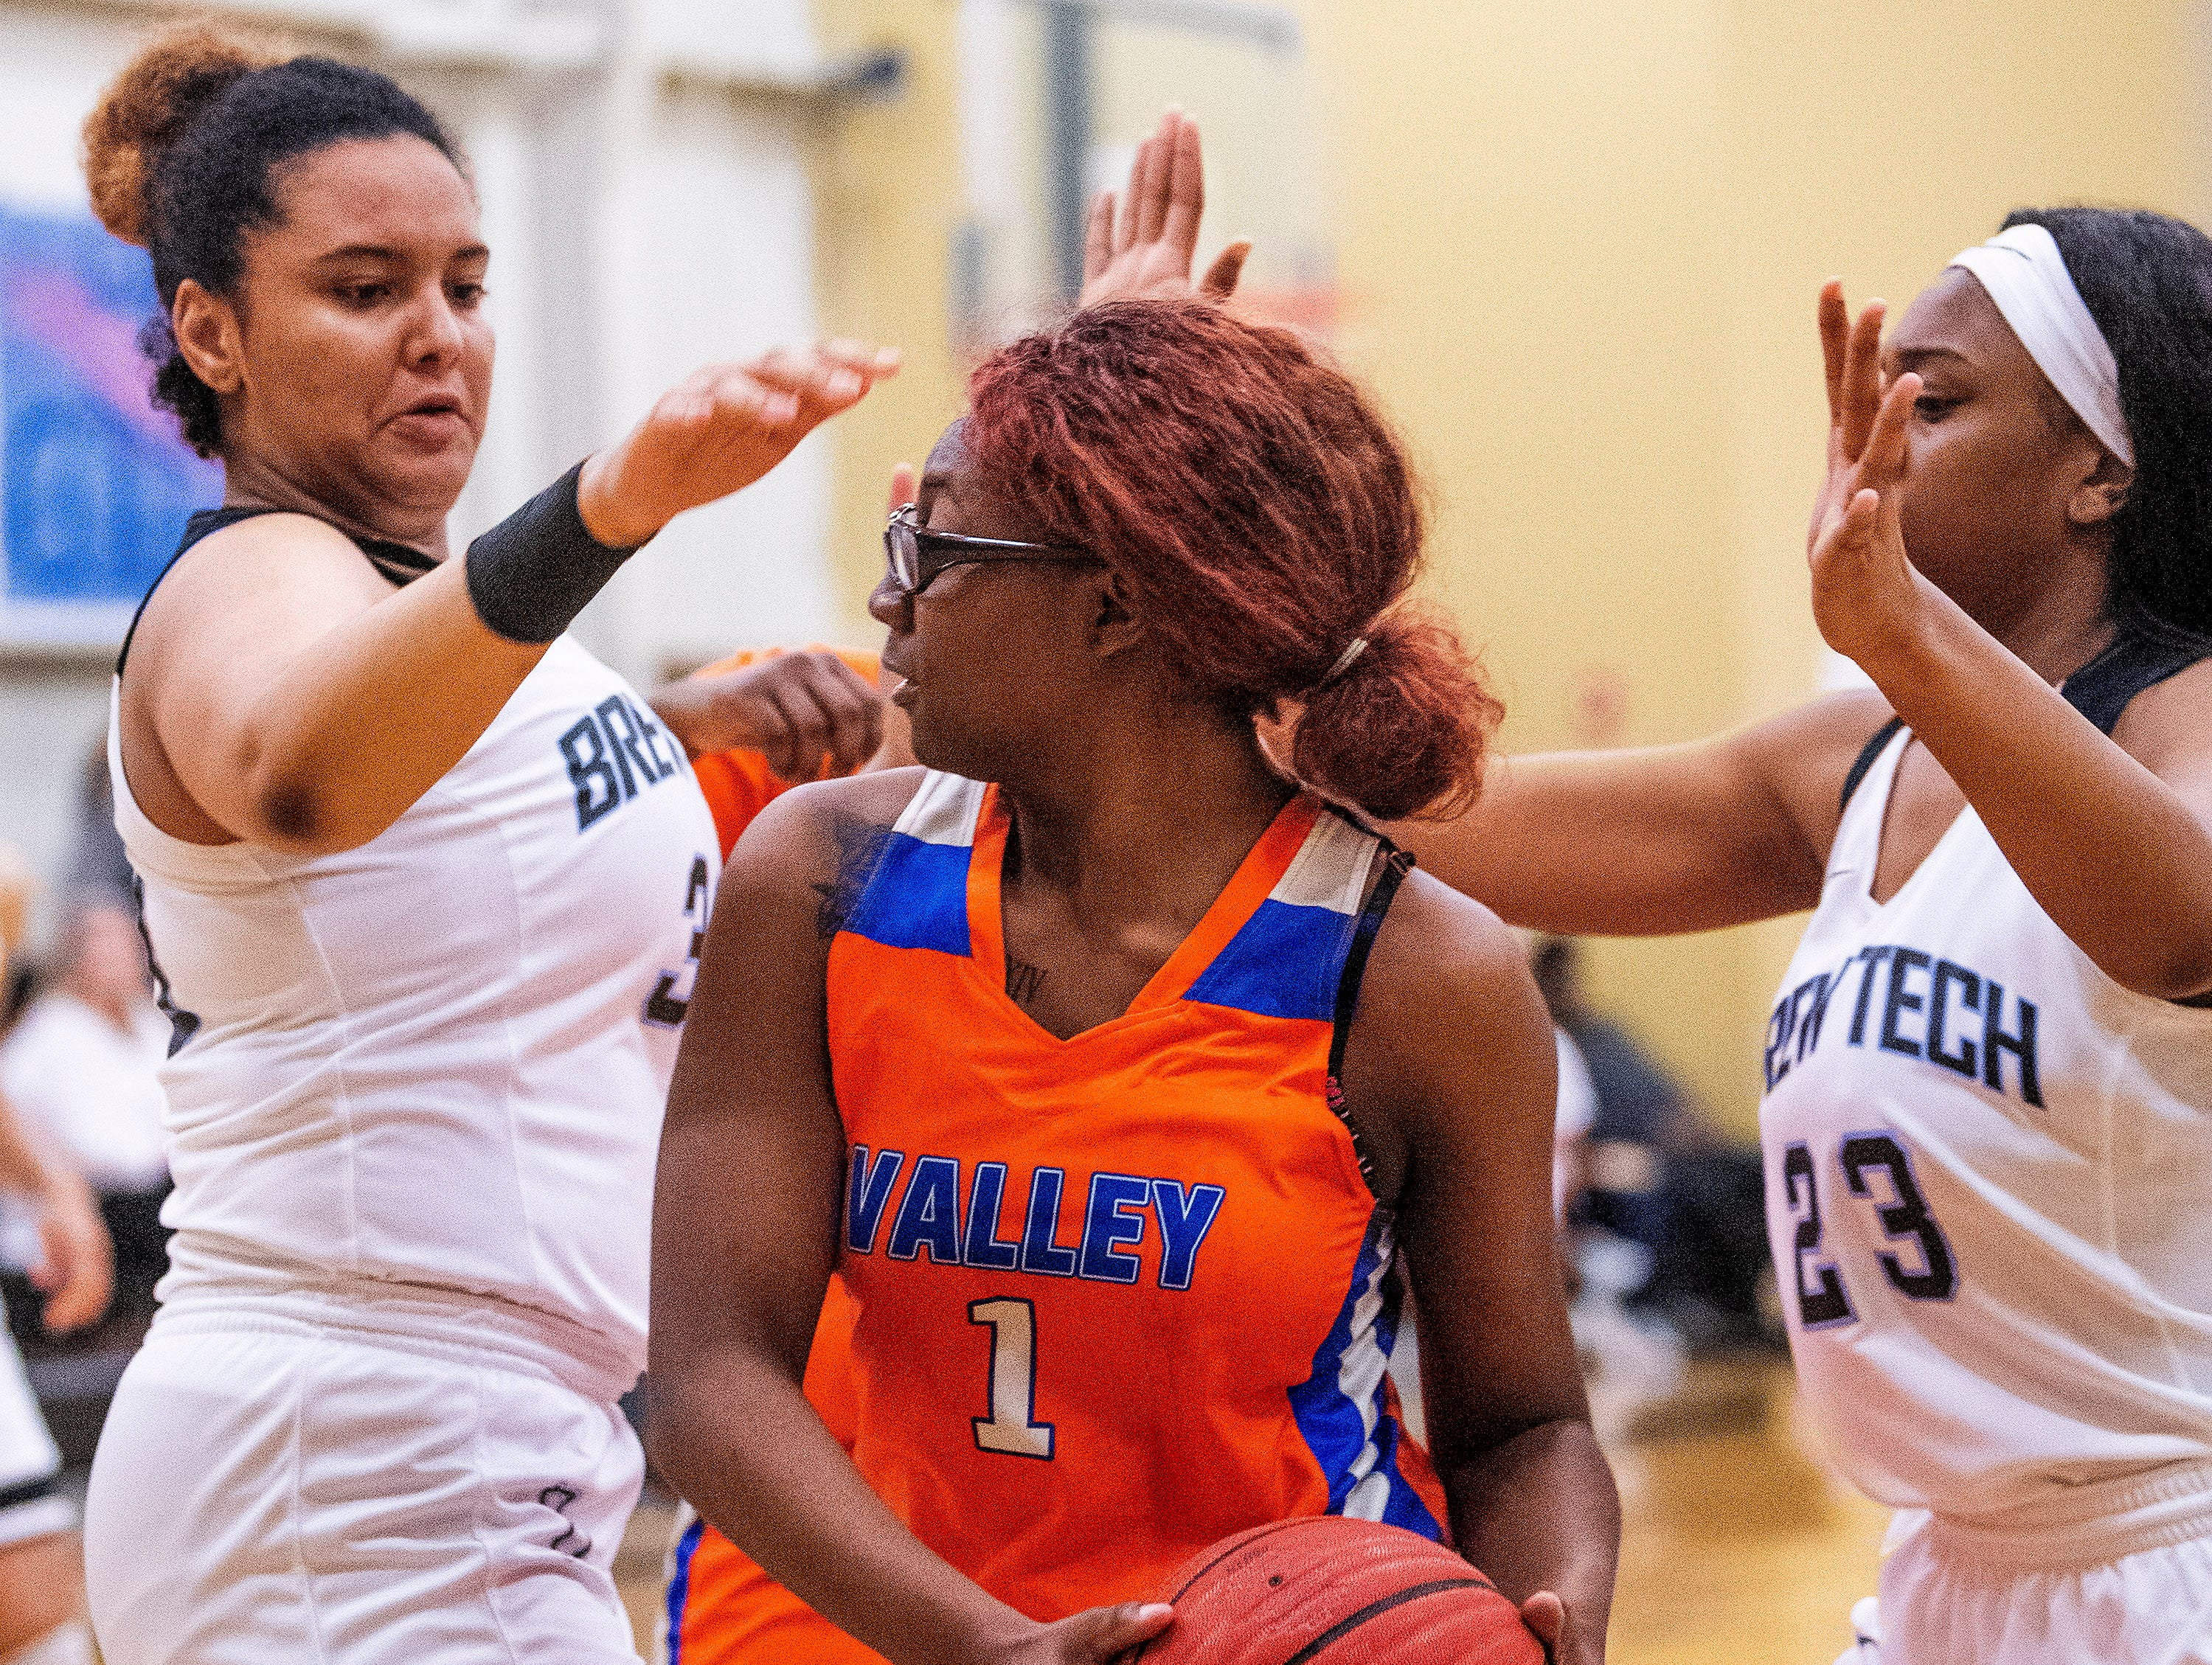 Valley's Starbresha Core (1) is double teamed by Brewbaker Tech's Jurnee Webster (30) and Brewbaker Tech's Kayla Williams (23) at the BrewTech campus in Montgomery, Ala., on Thursday February 7, 2019.